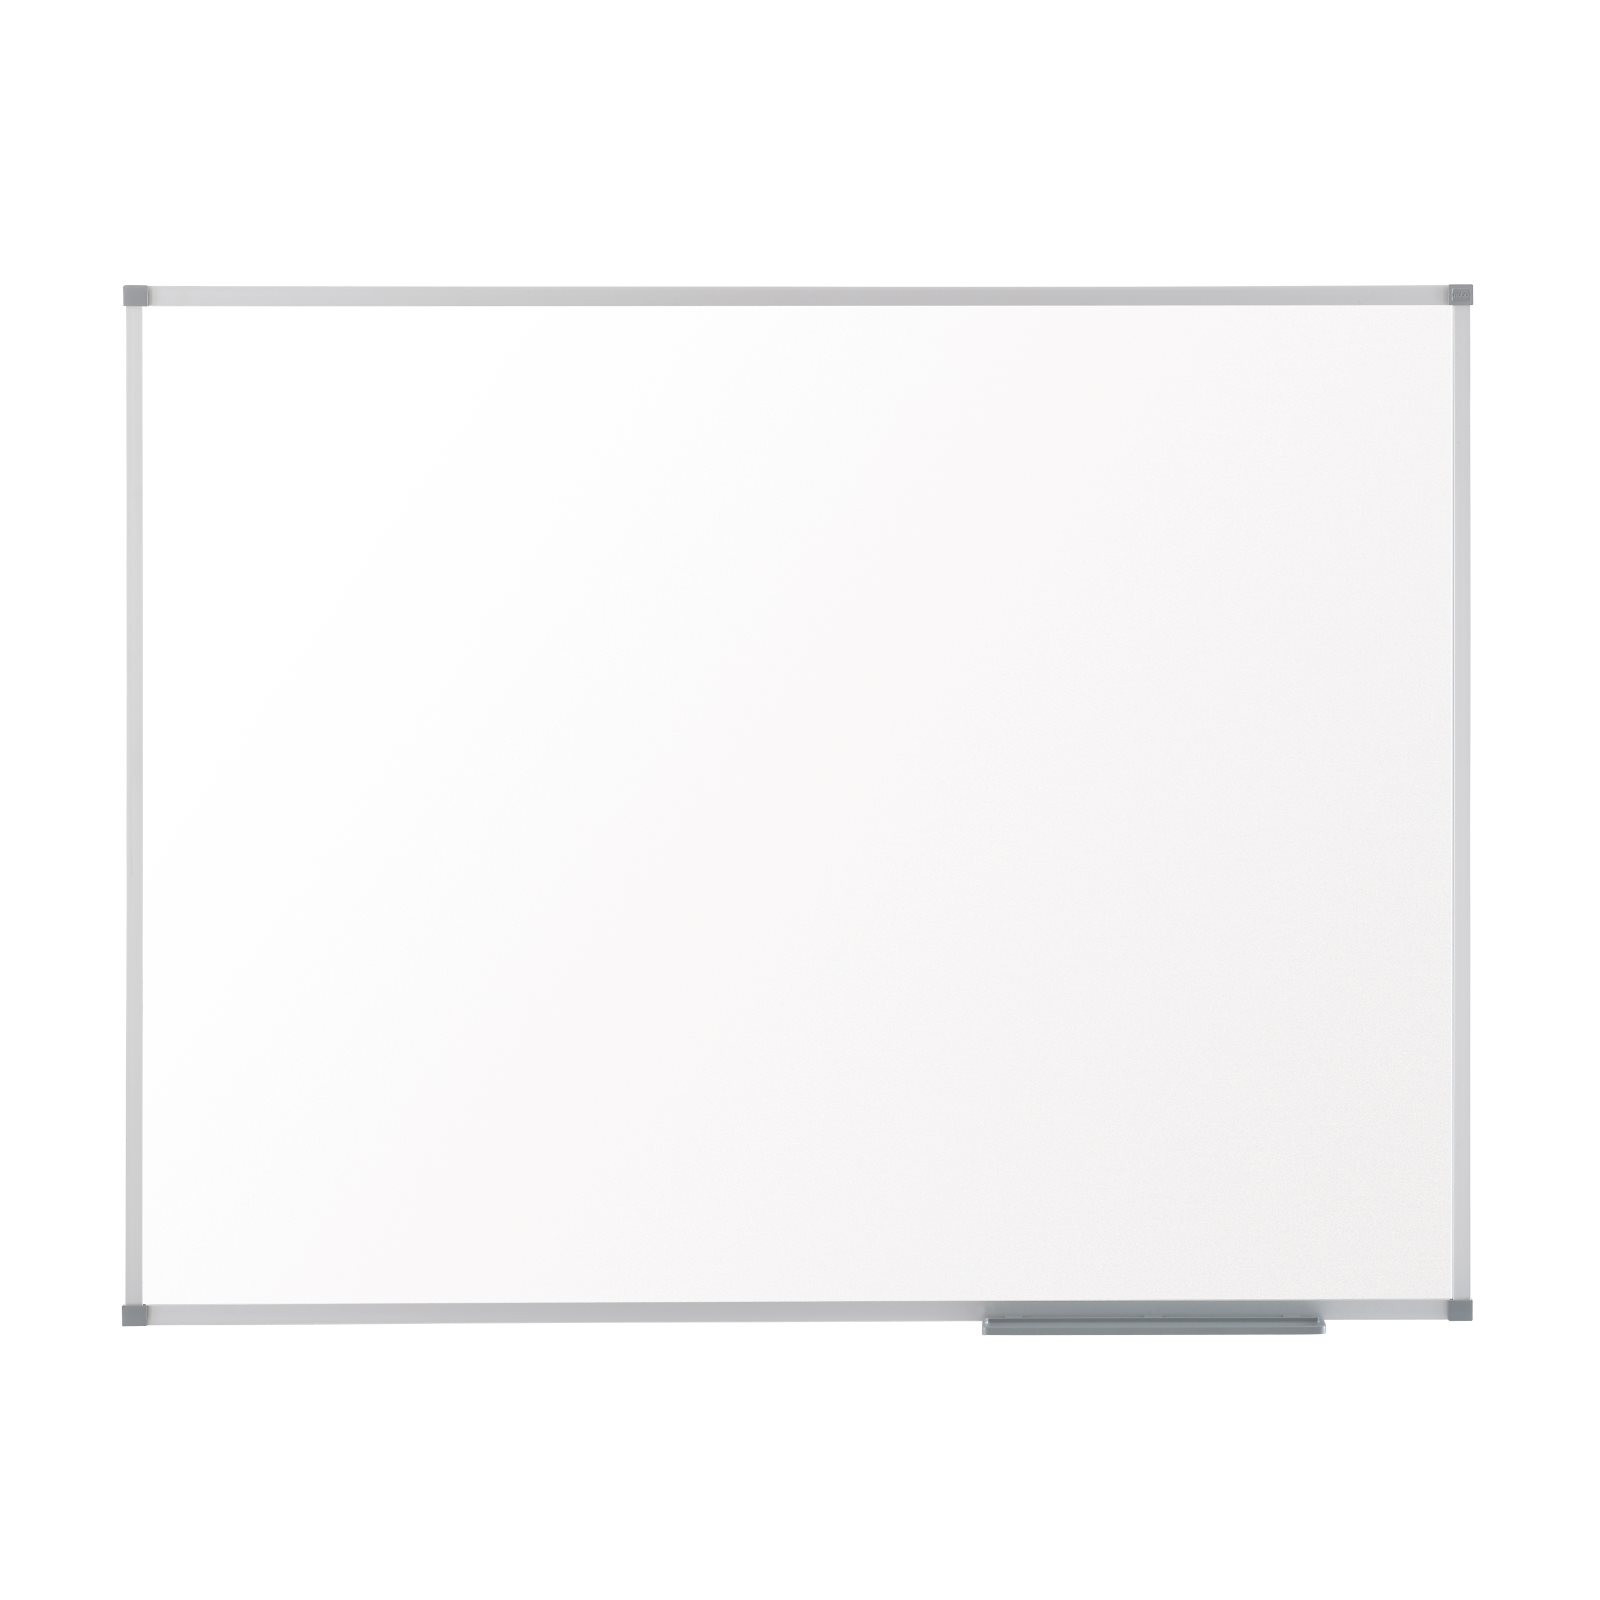 acco Nobo Basic Steel Whiteboard 1200x900mm Dd 1905211 - AD01